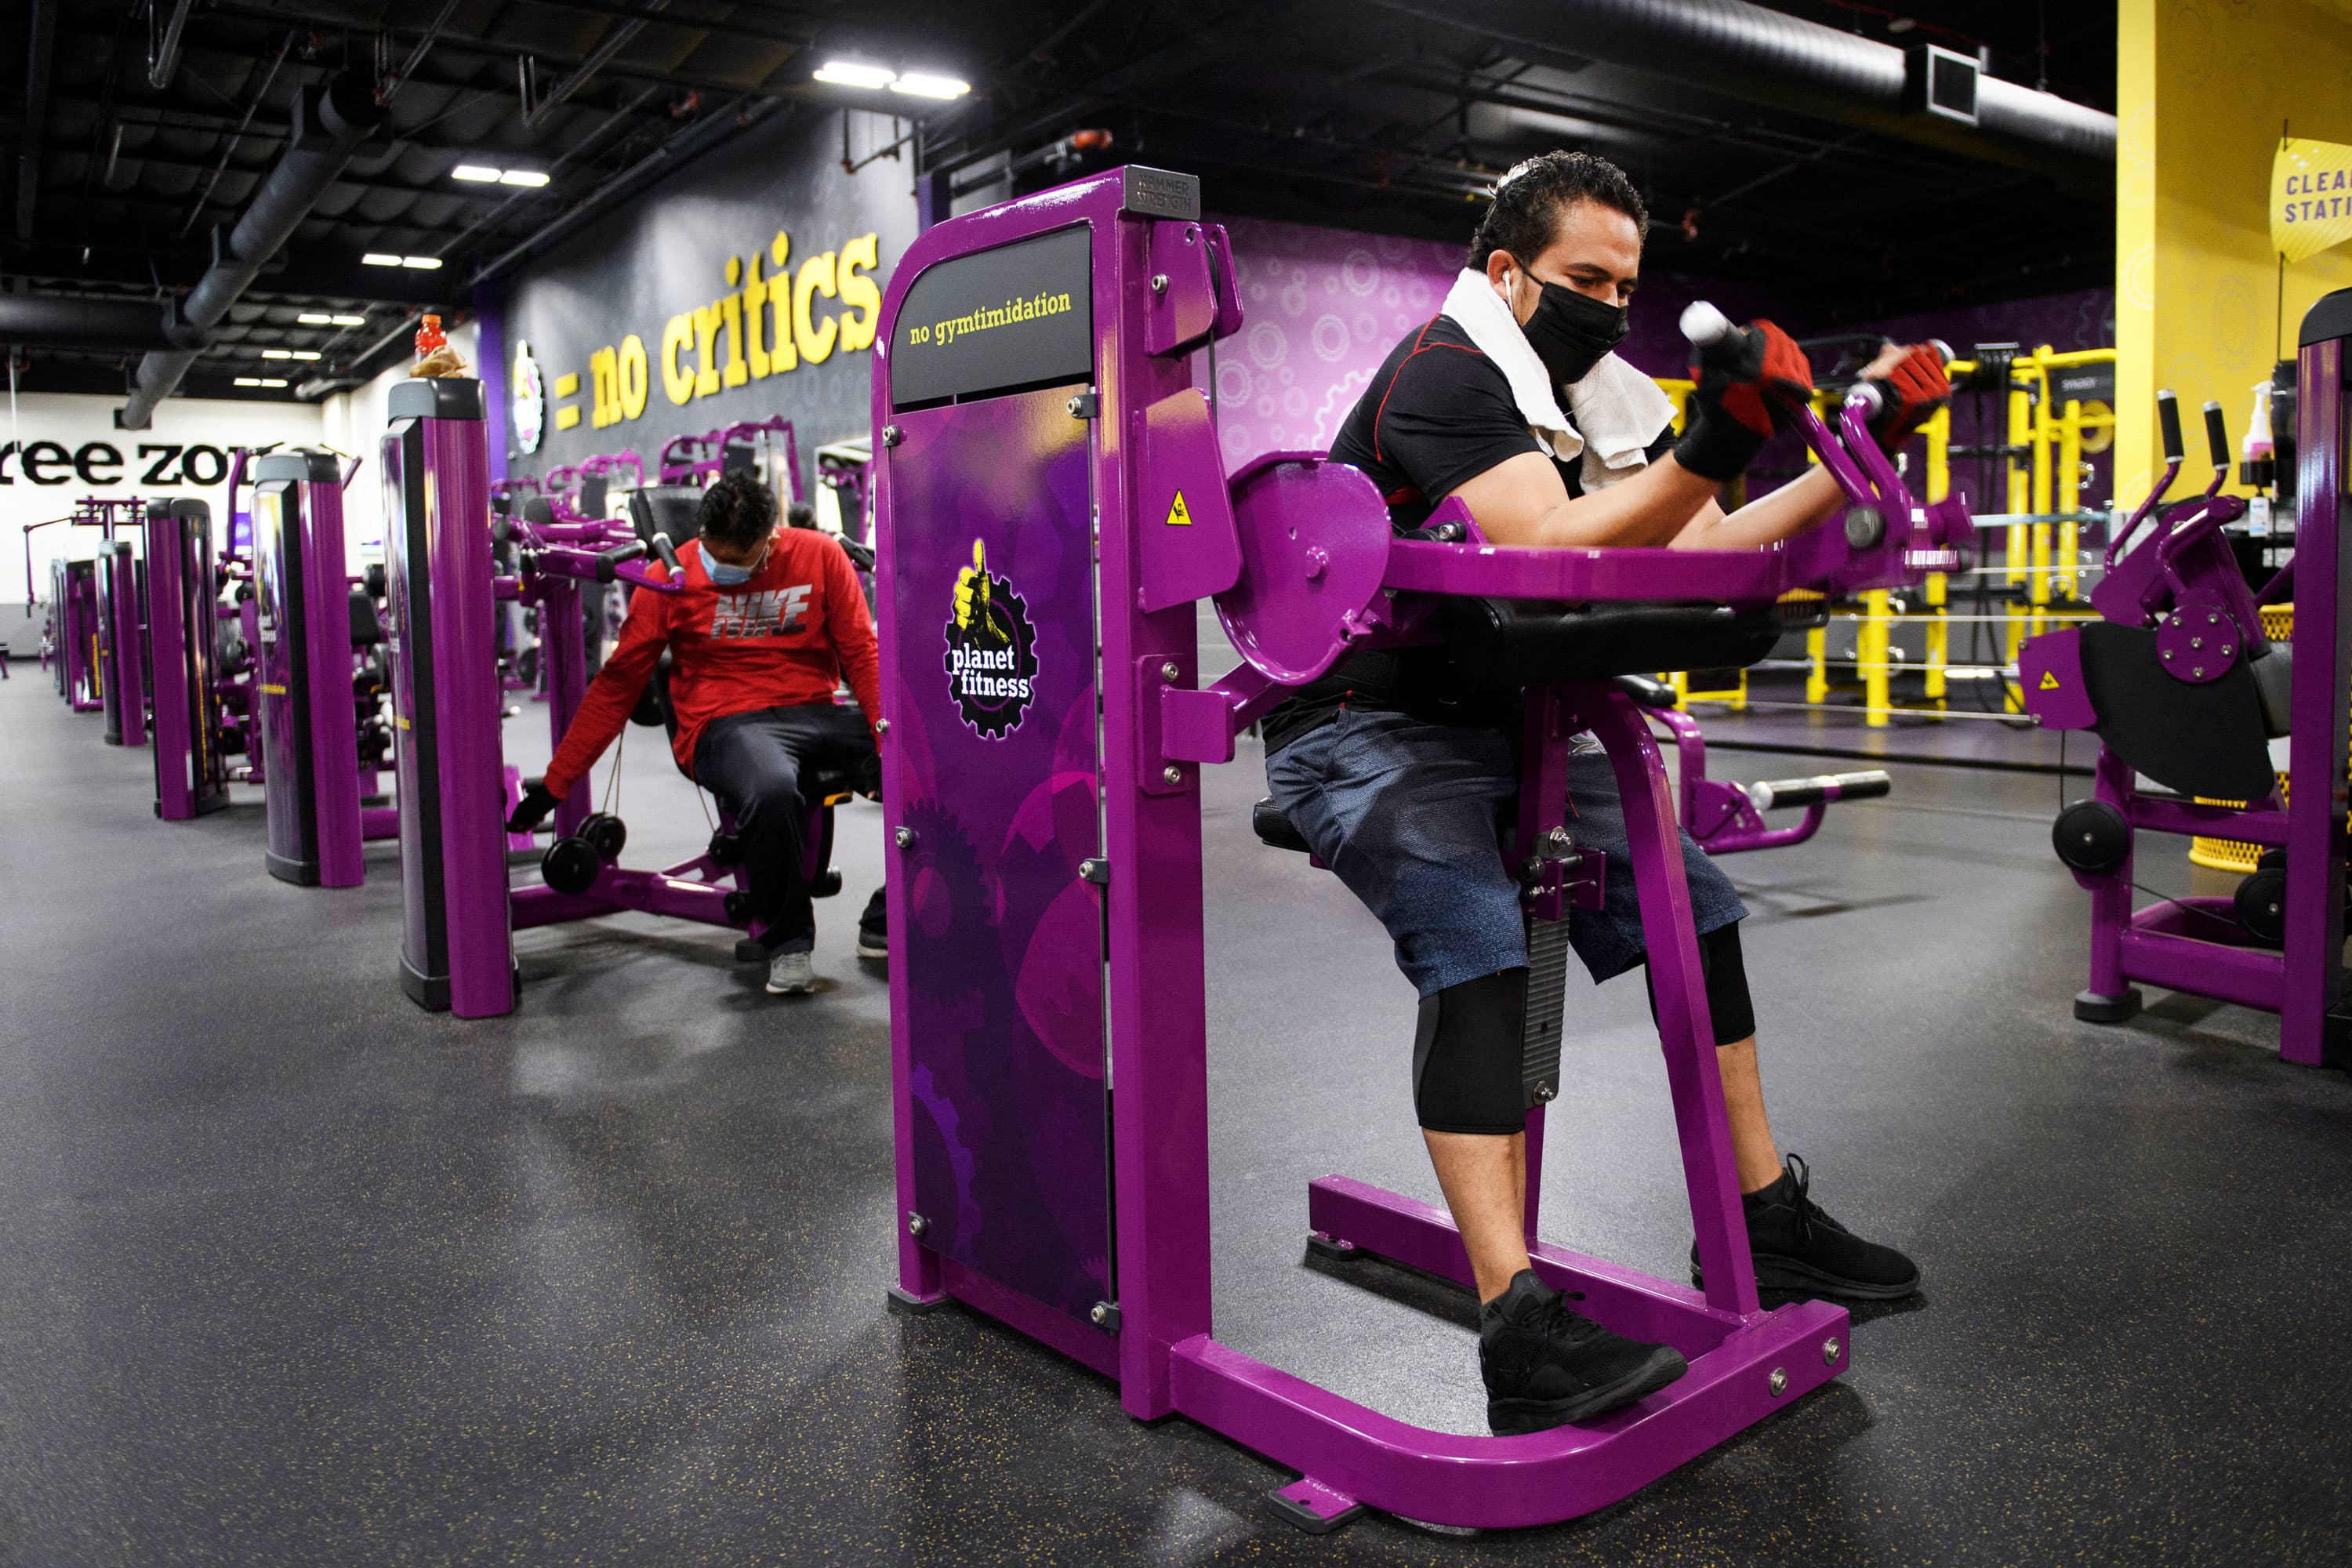 Americans are heading back to gyms as interest in at-home workouts wanes, Jefferies says